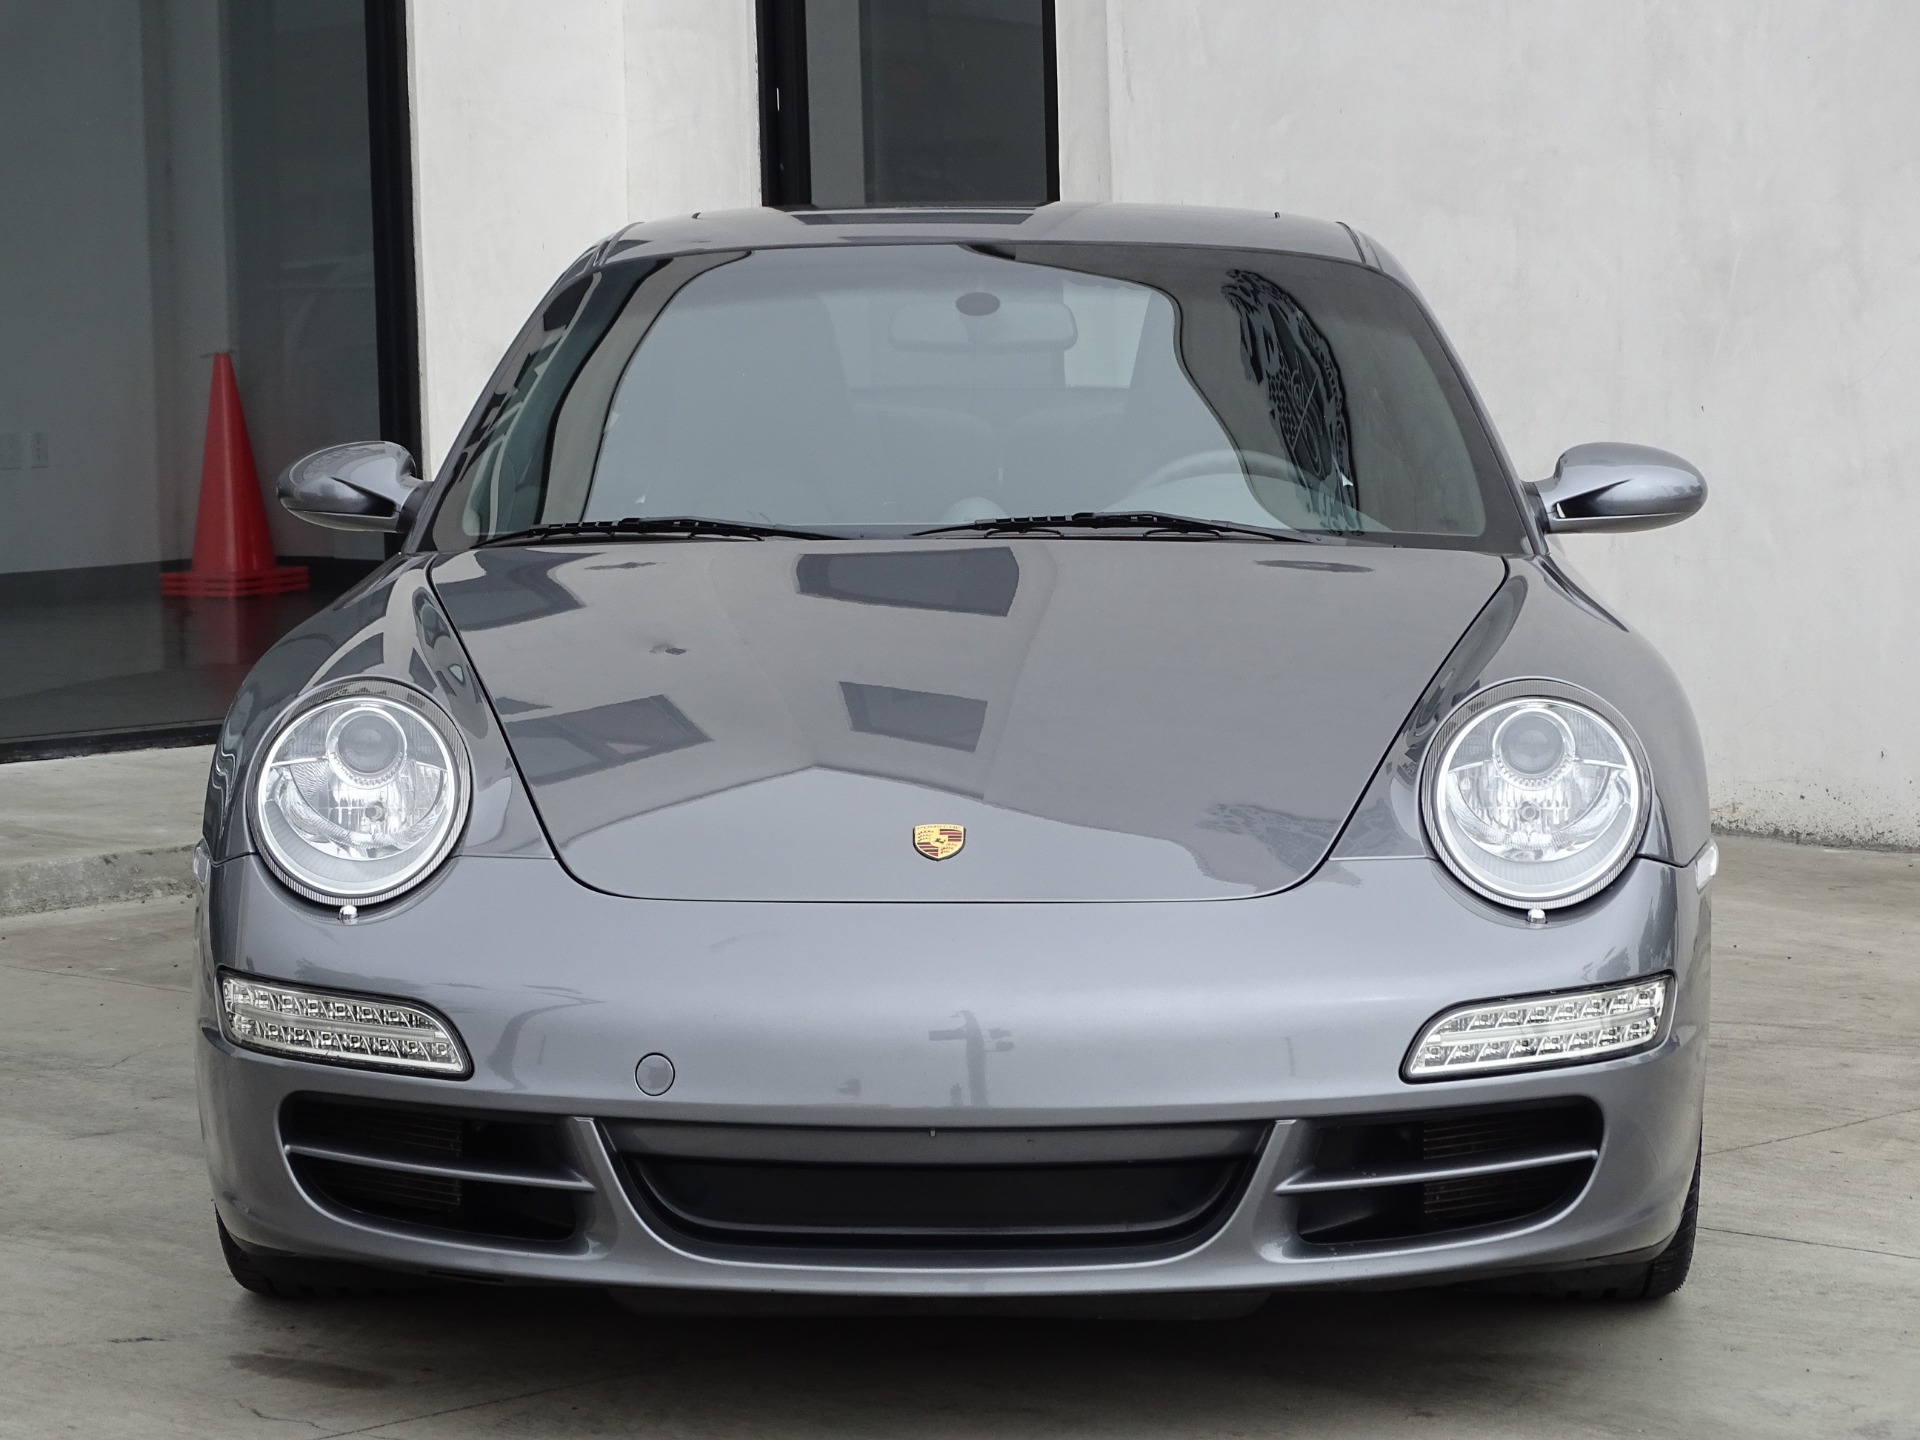 Used-2005-Porsche-911-Carrera-S--***-6-SPEED-MANUAL-***